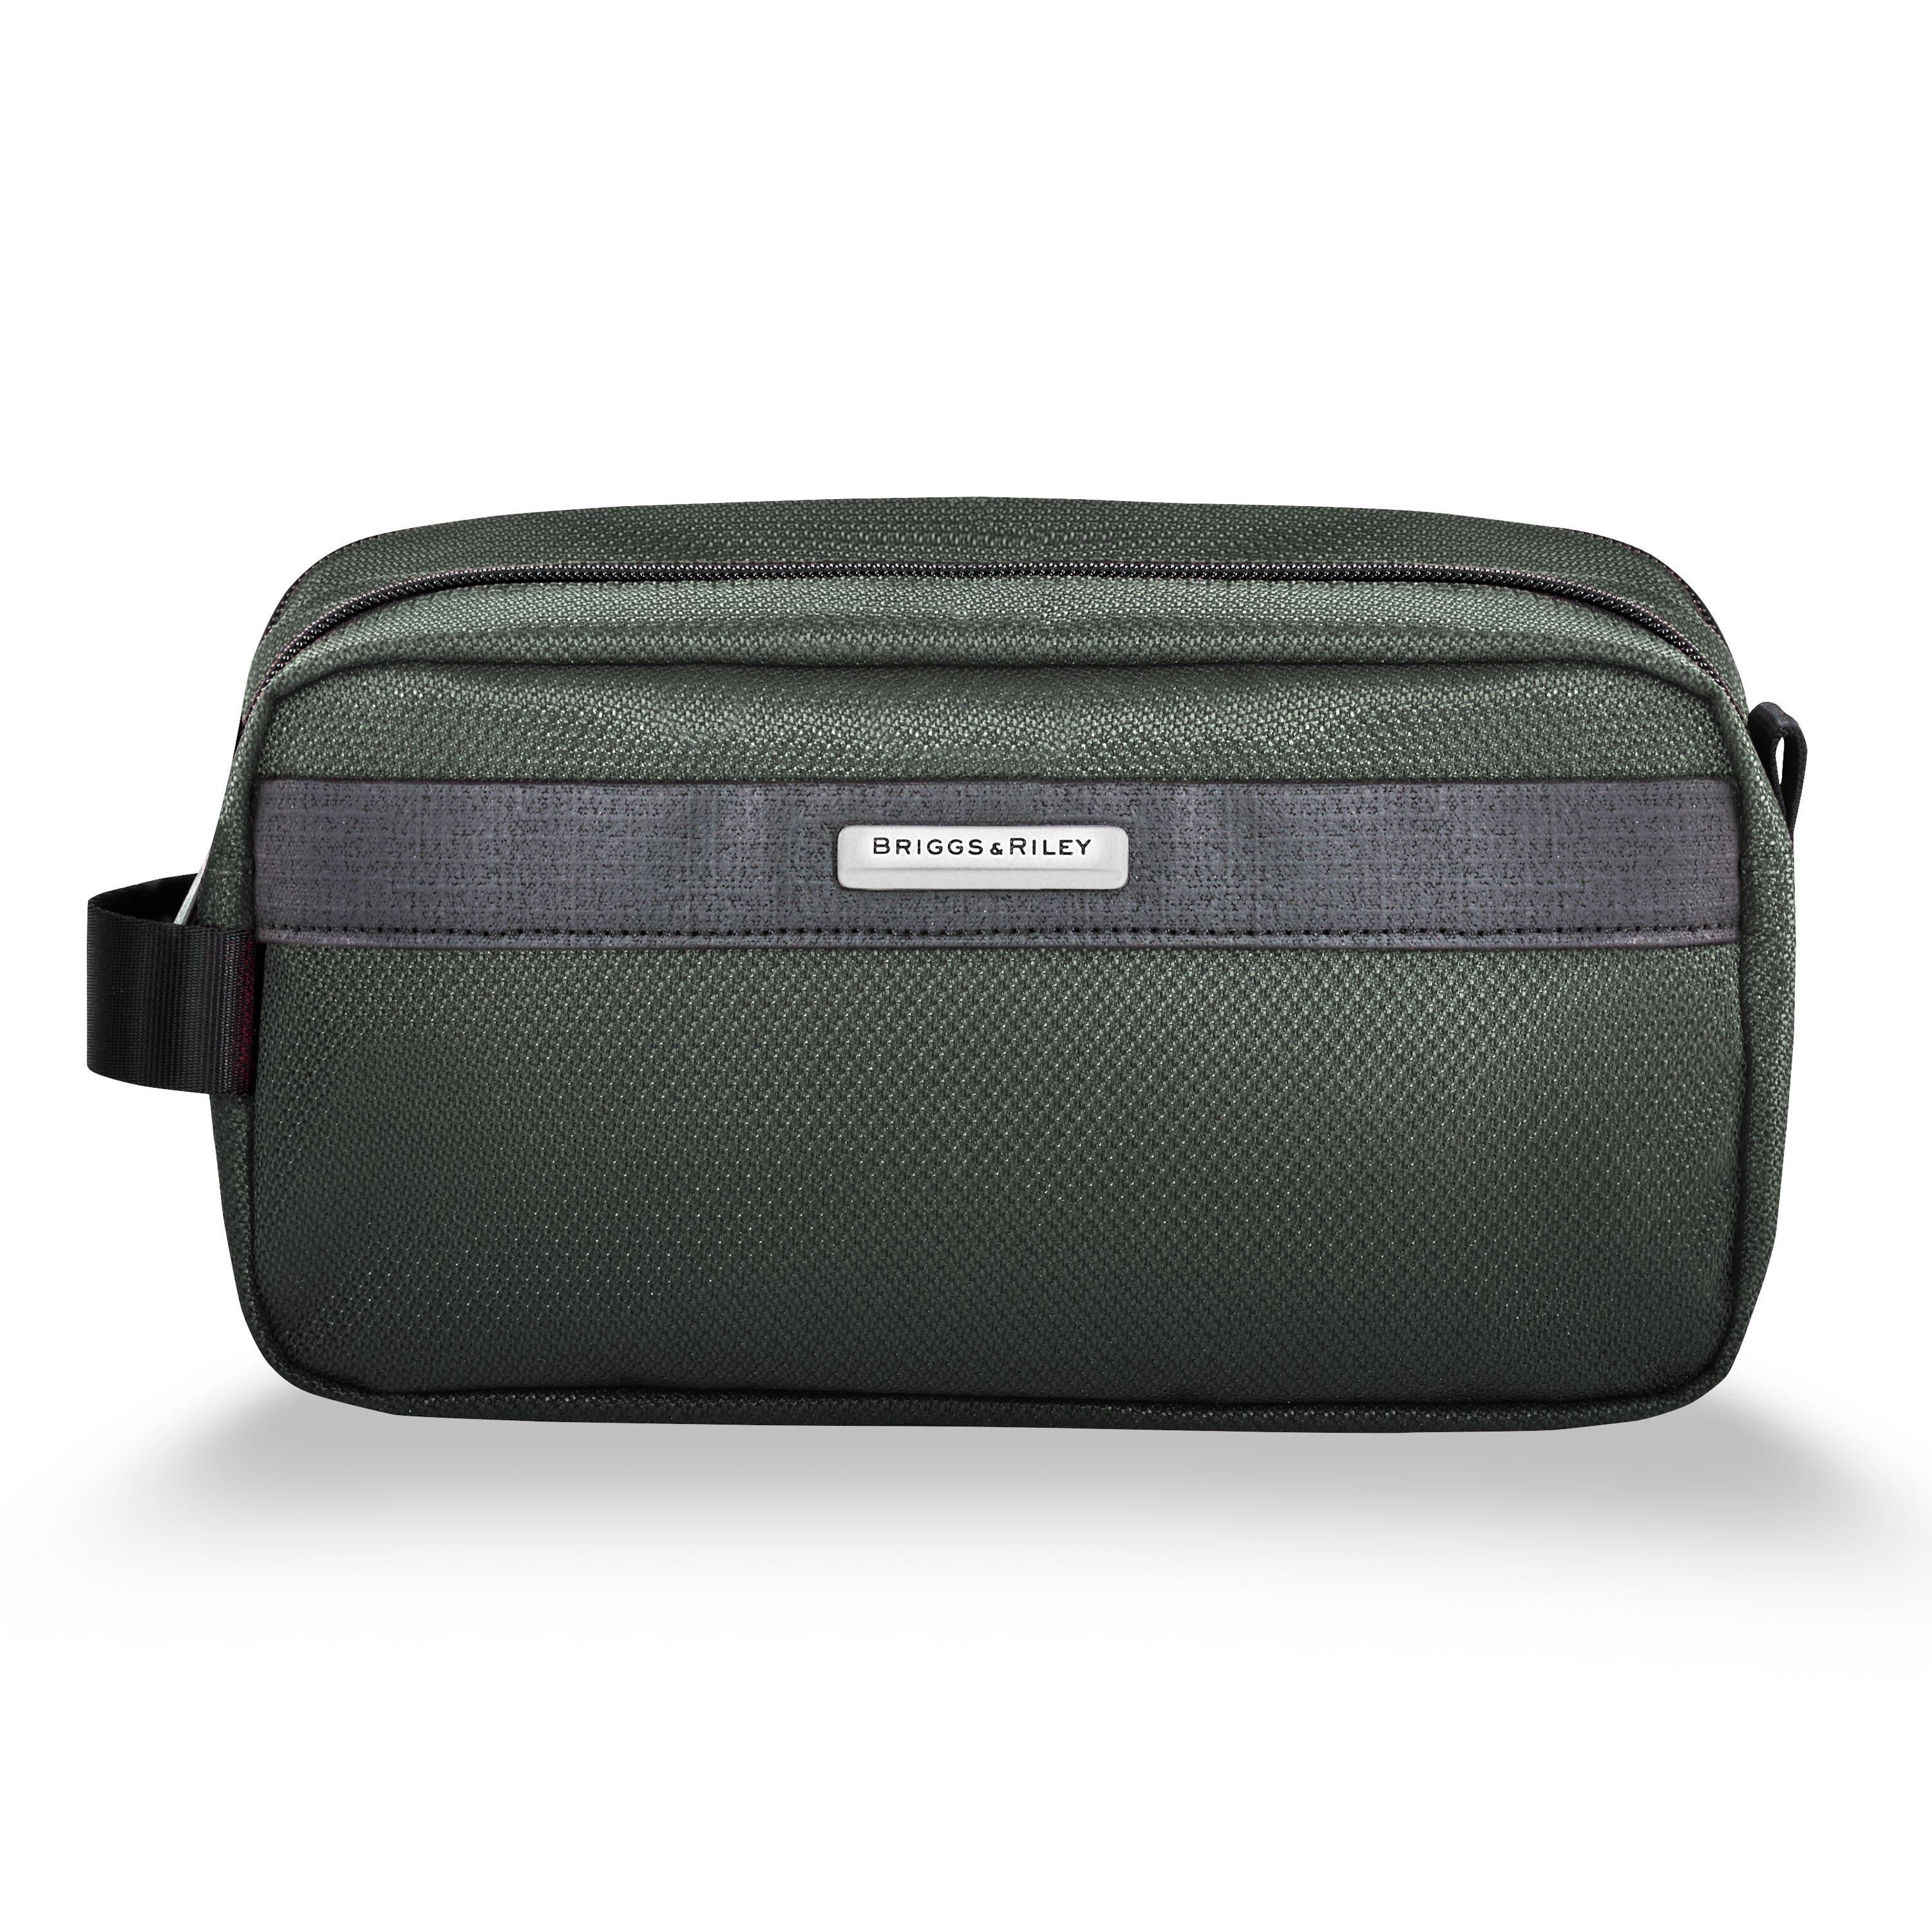 Briggs & Riley Transcend Toiletry Kit - Rainforest